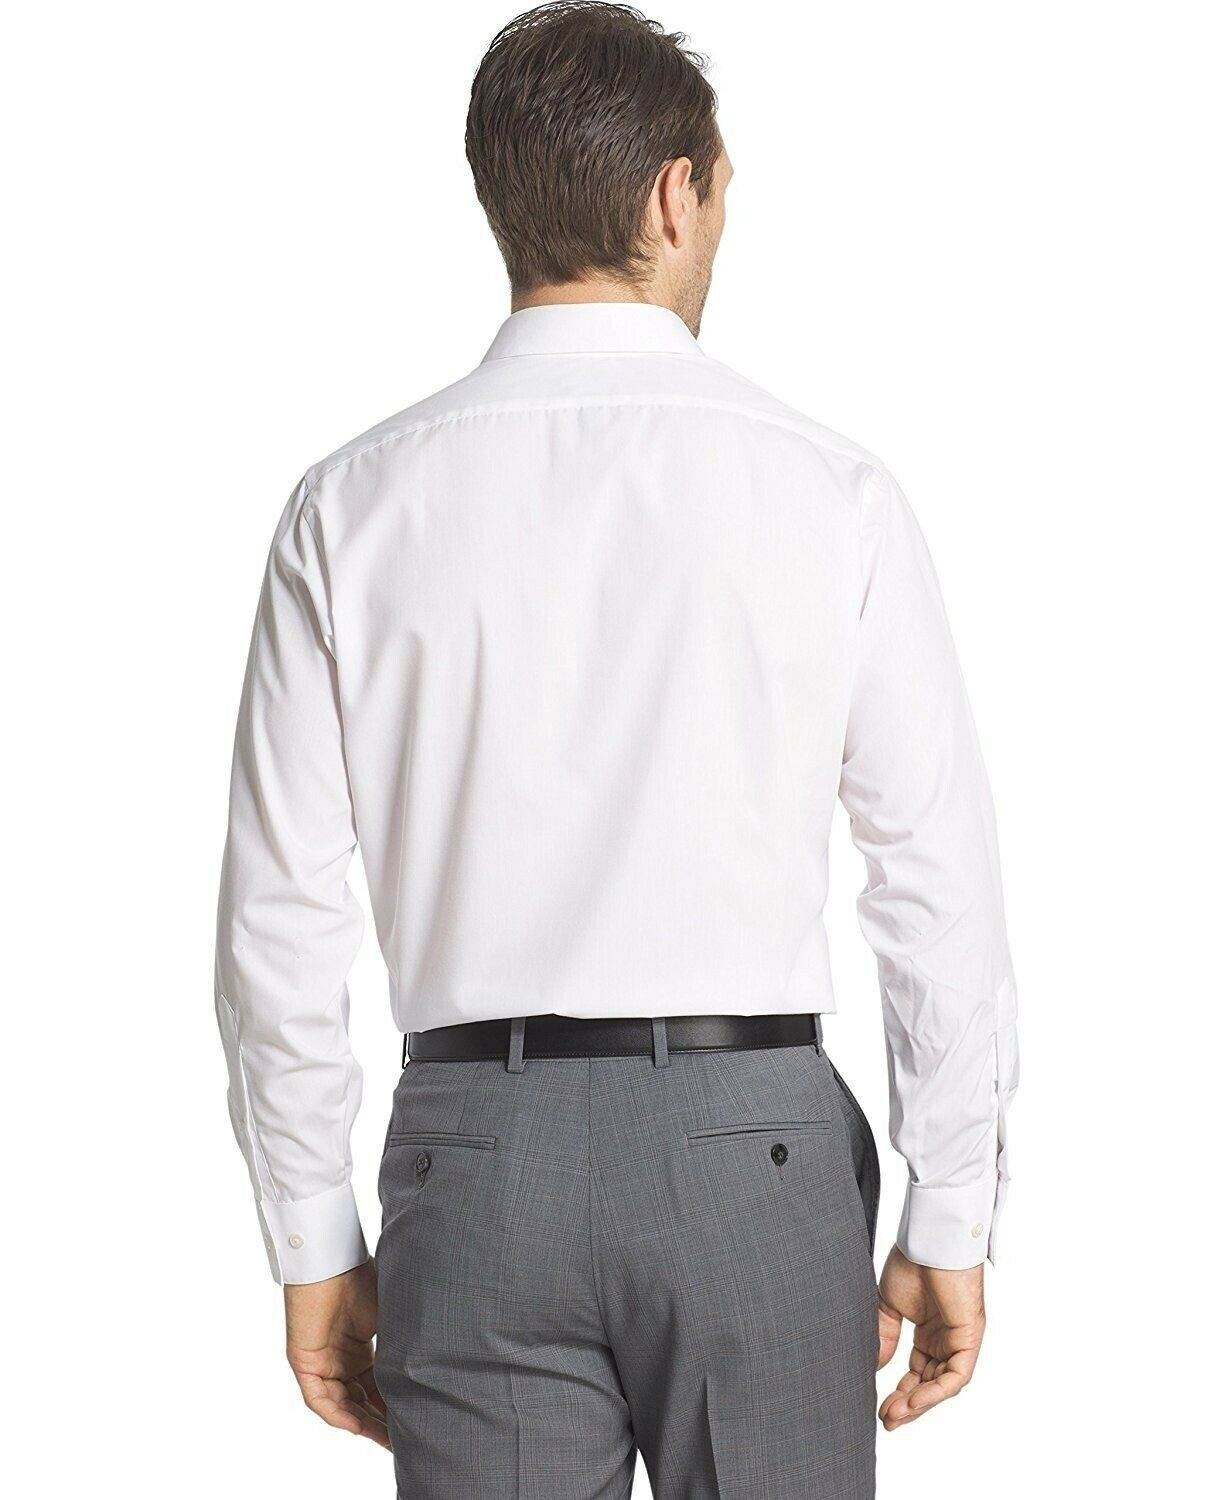 BERLIONI-ITALY-MEN-039-S-PRIME-FRENCH-CONVERTIBLE-CUFF-SOLID-DRESS-SHIRT-WHITE thumbnail 24